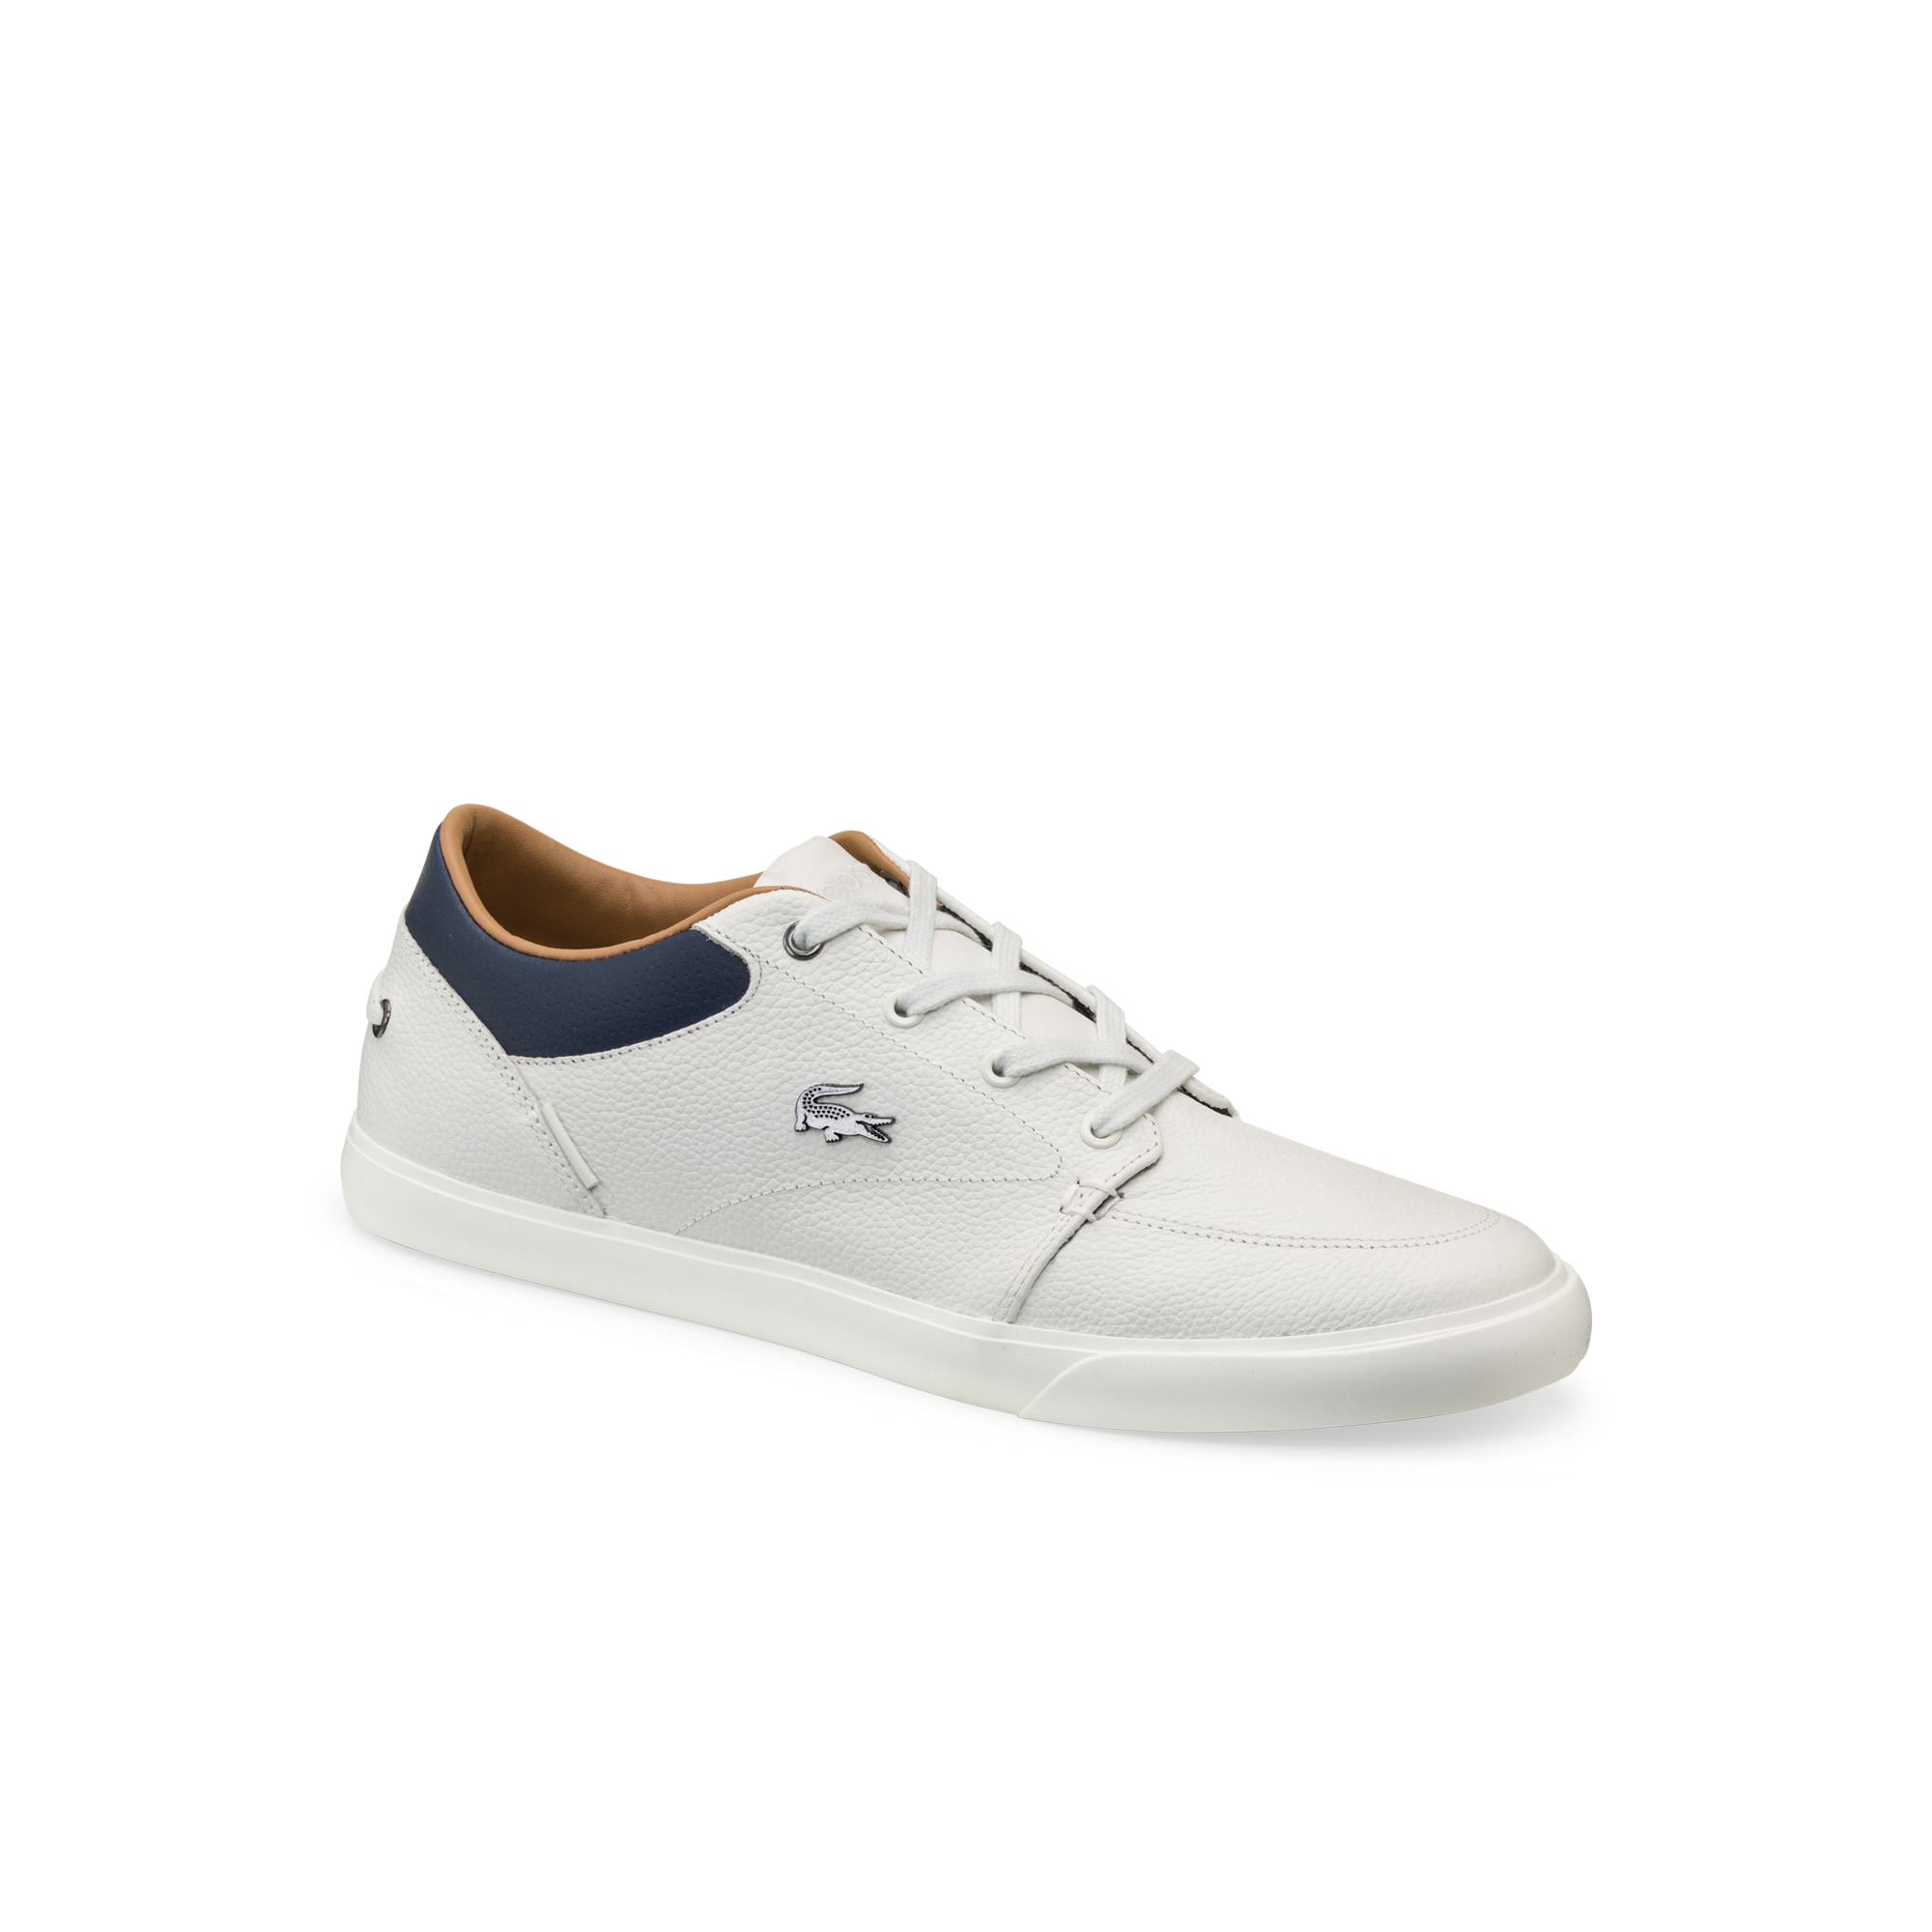 Men's Bayliss Leather Trainers